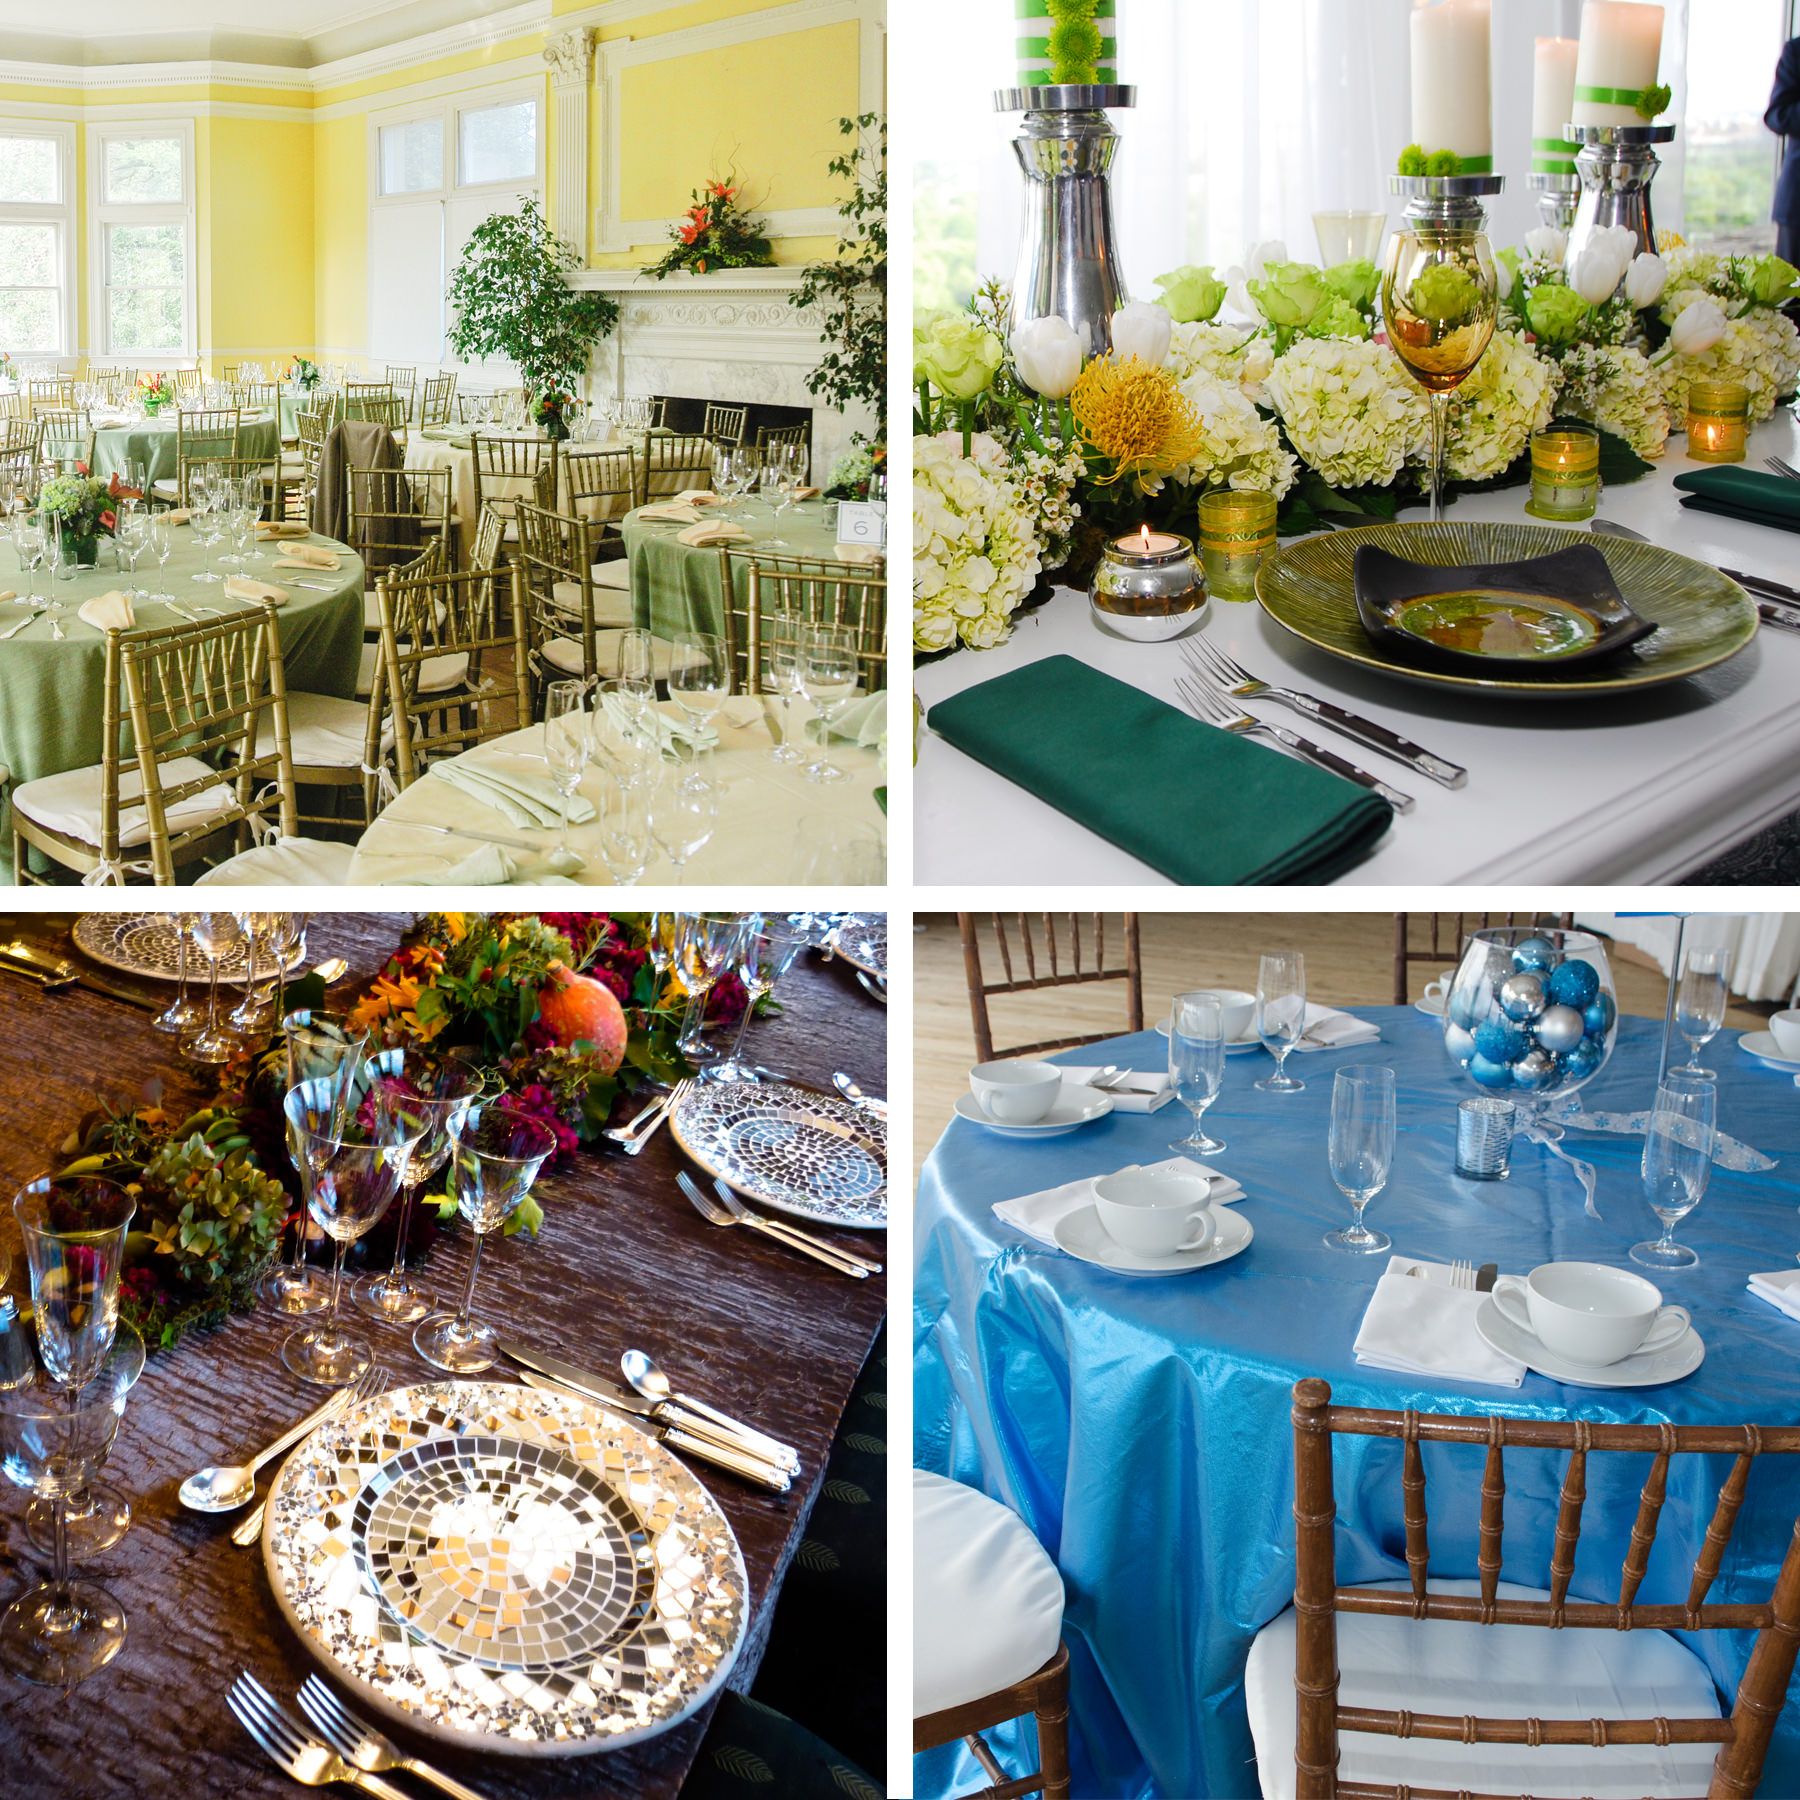 Seasonal Farm-to-table Weddings with Catering by Seasons